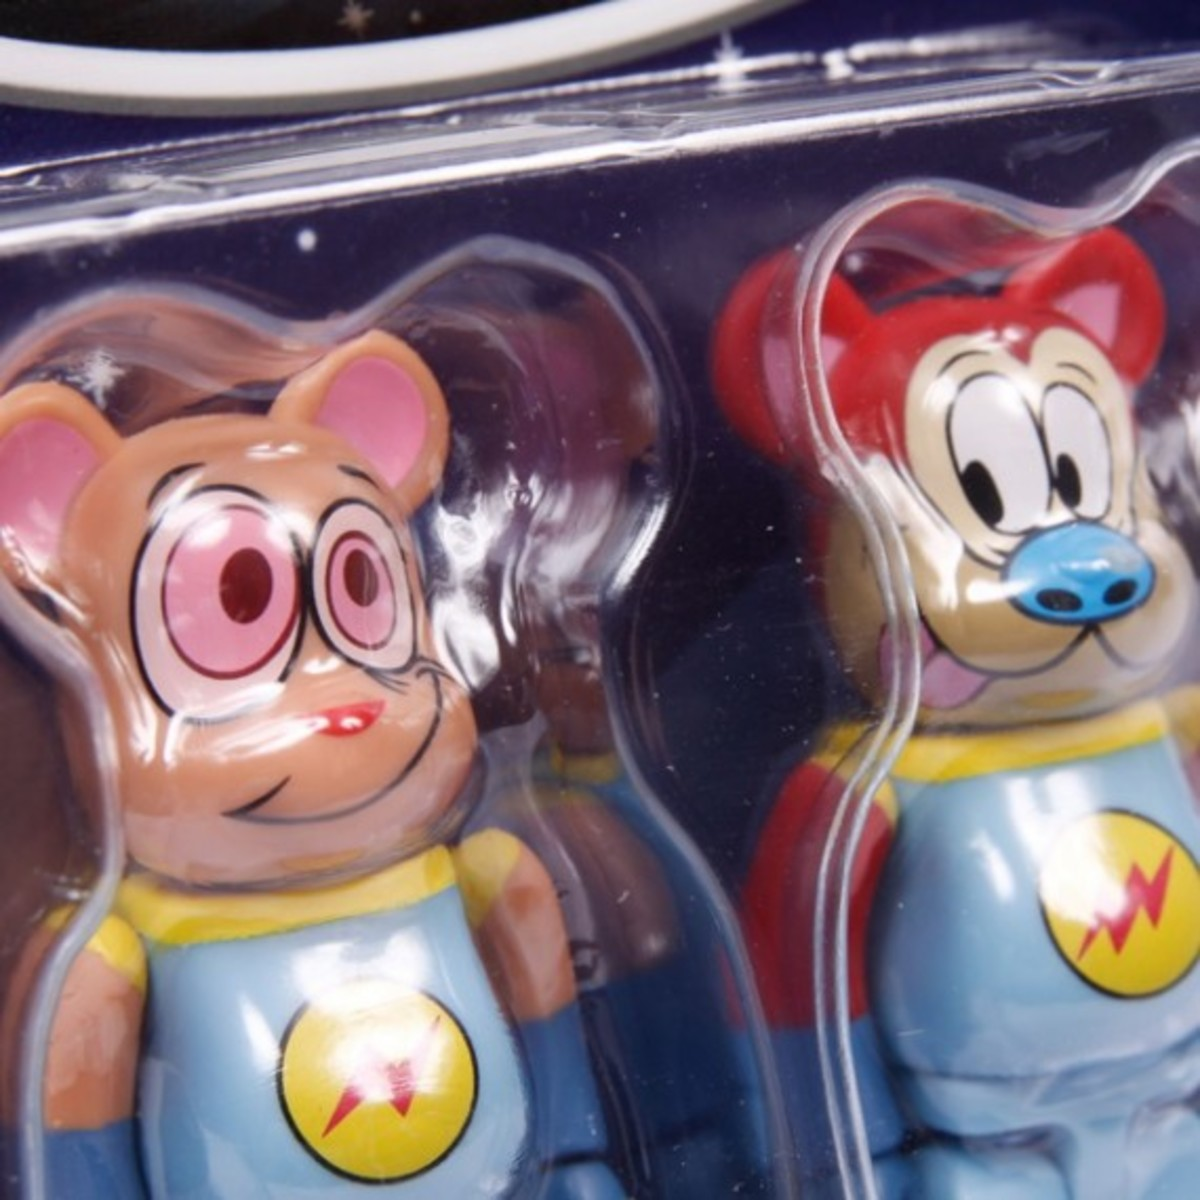 SLAM-JAM-x-MEDICOM-TOY-Ren-and-Stimpy-Bearbrick-3